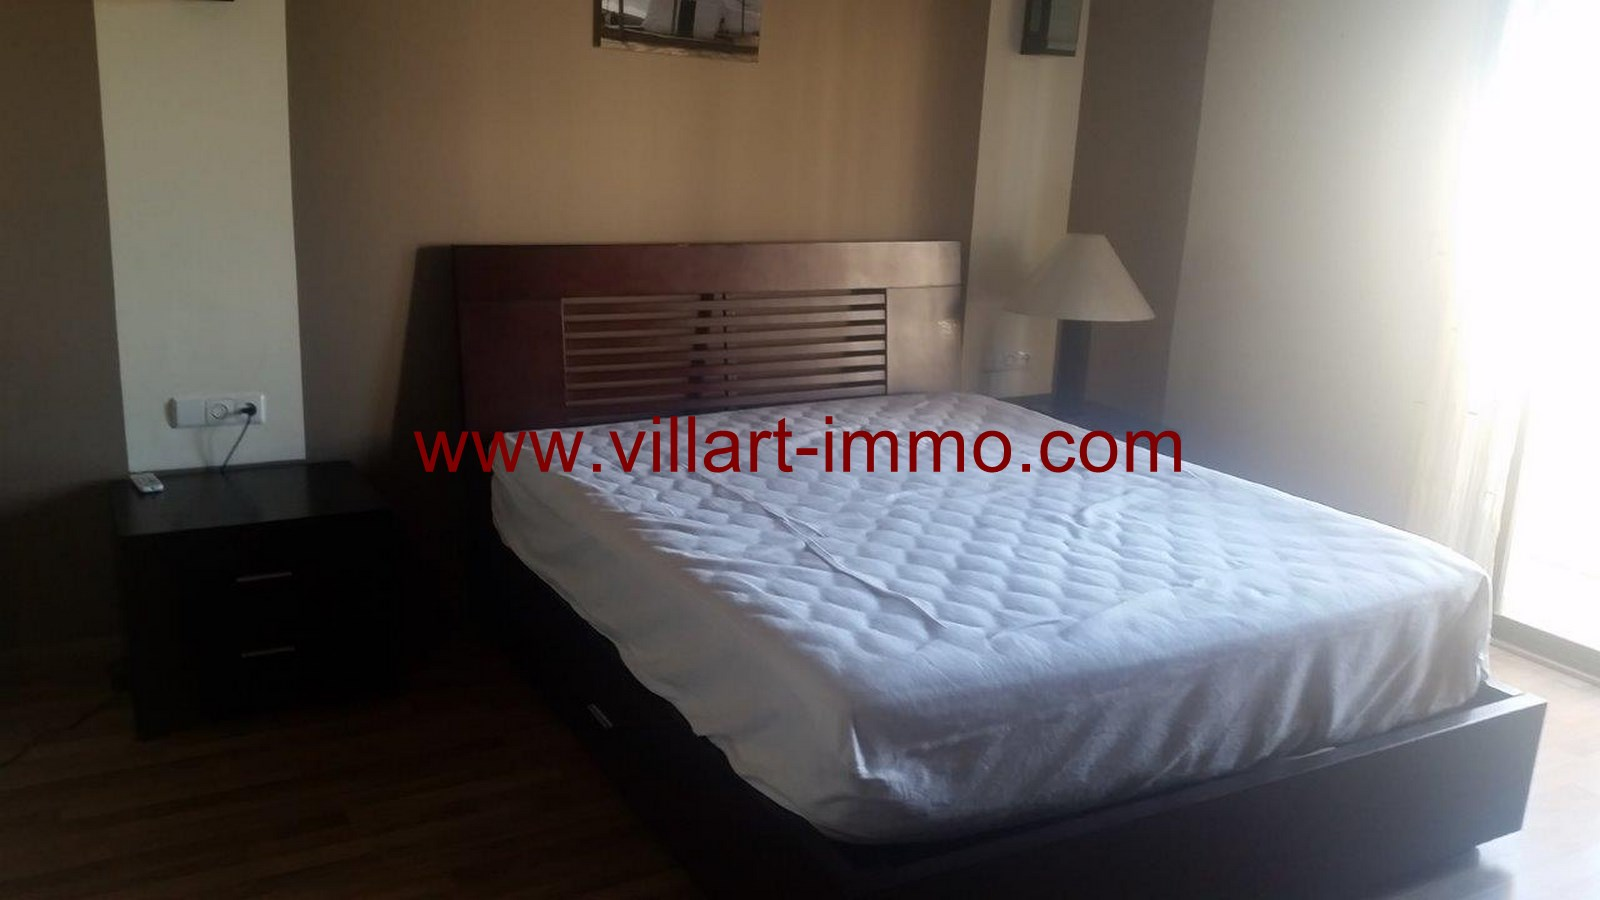 14-To Let-Villa-Furnished-Tangier-Bedroom 2-LSTV986-Villart-Immo